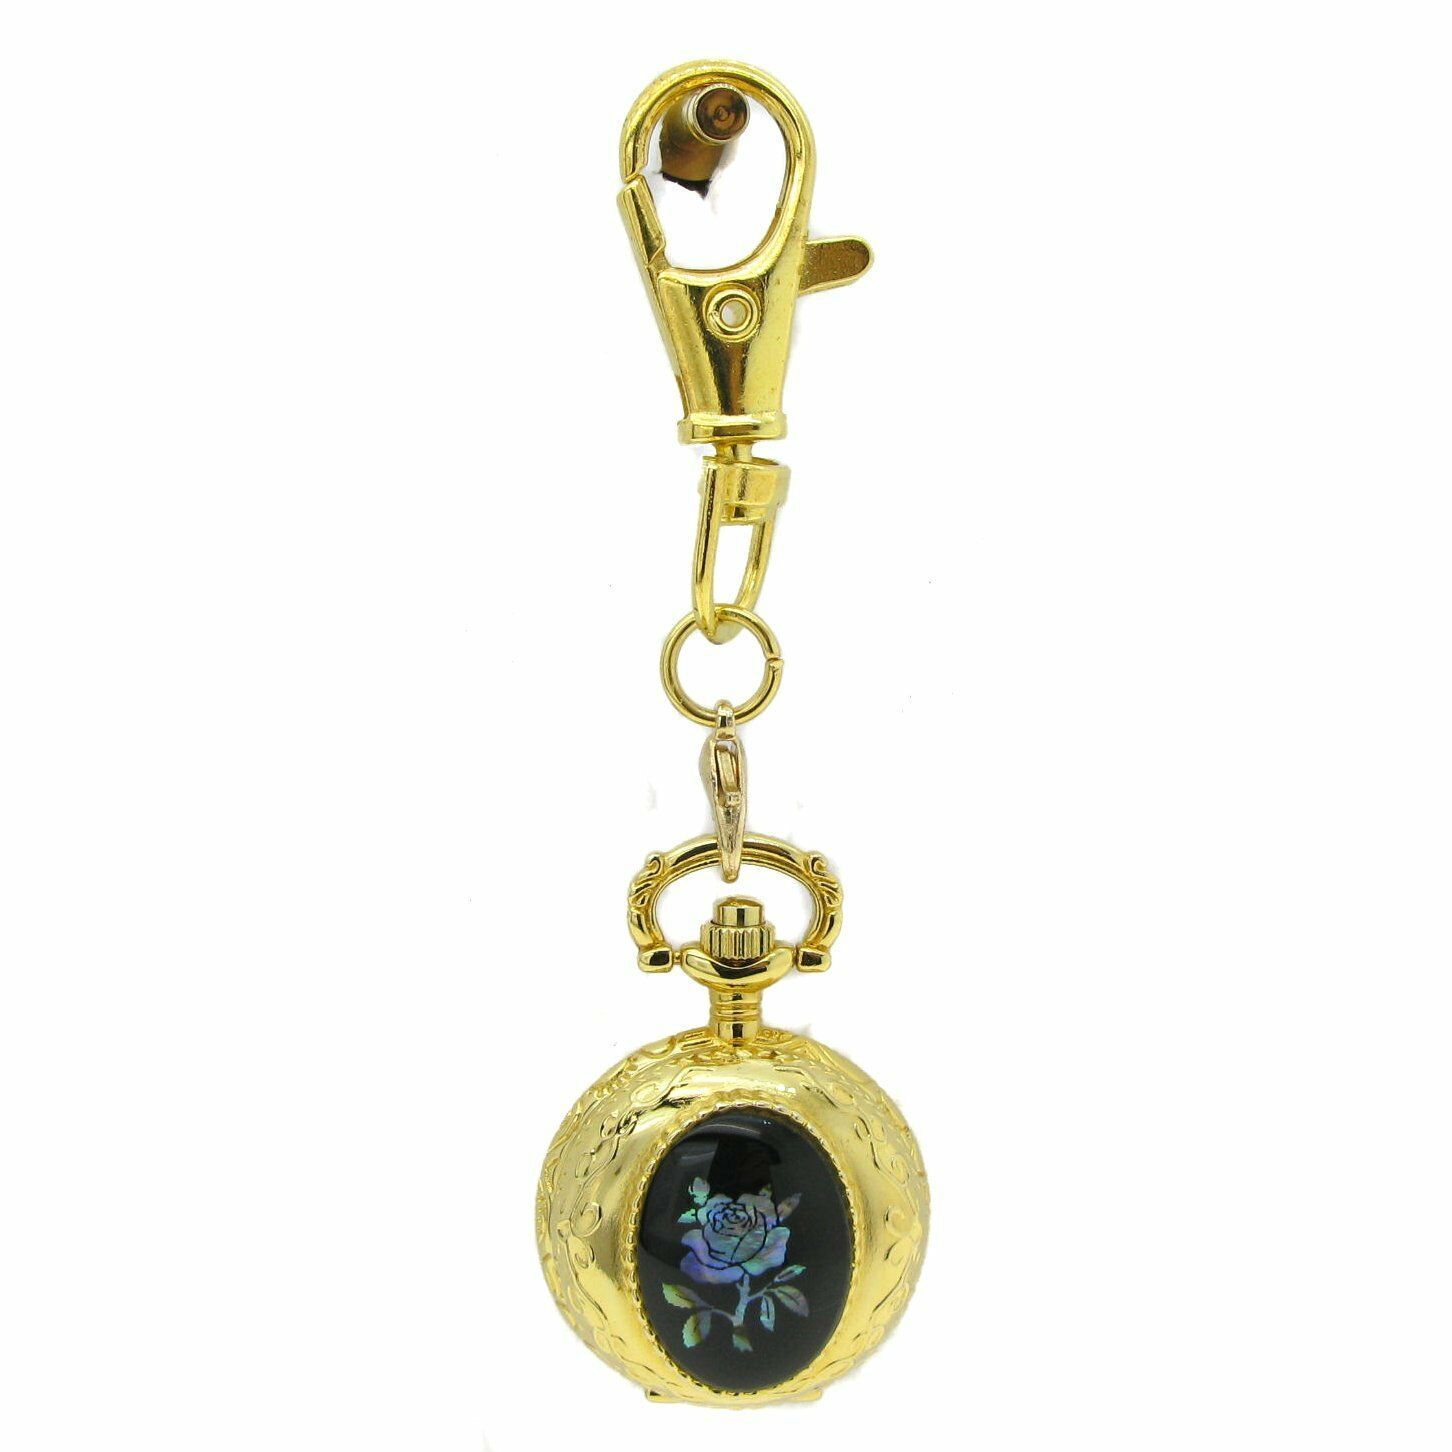 Gold Ladies Vintage Pendant Watch Black Onxy 2 Ways Key Chain Necklace Gift L52